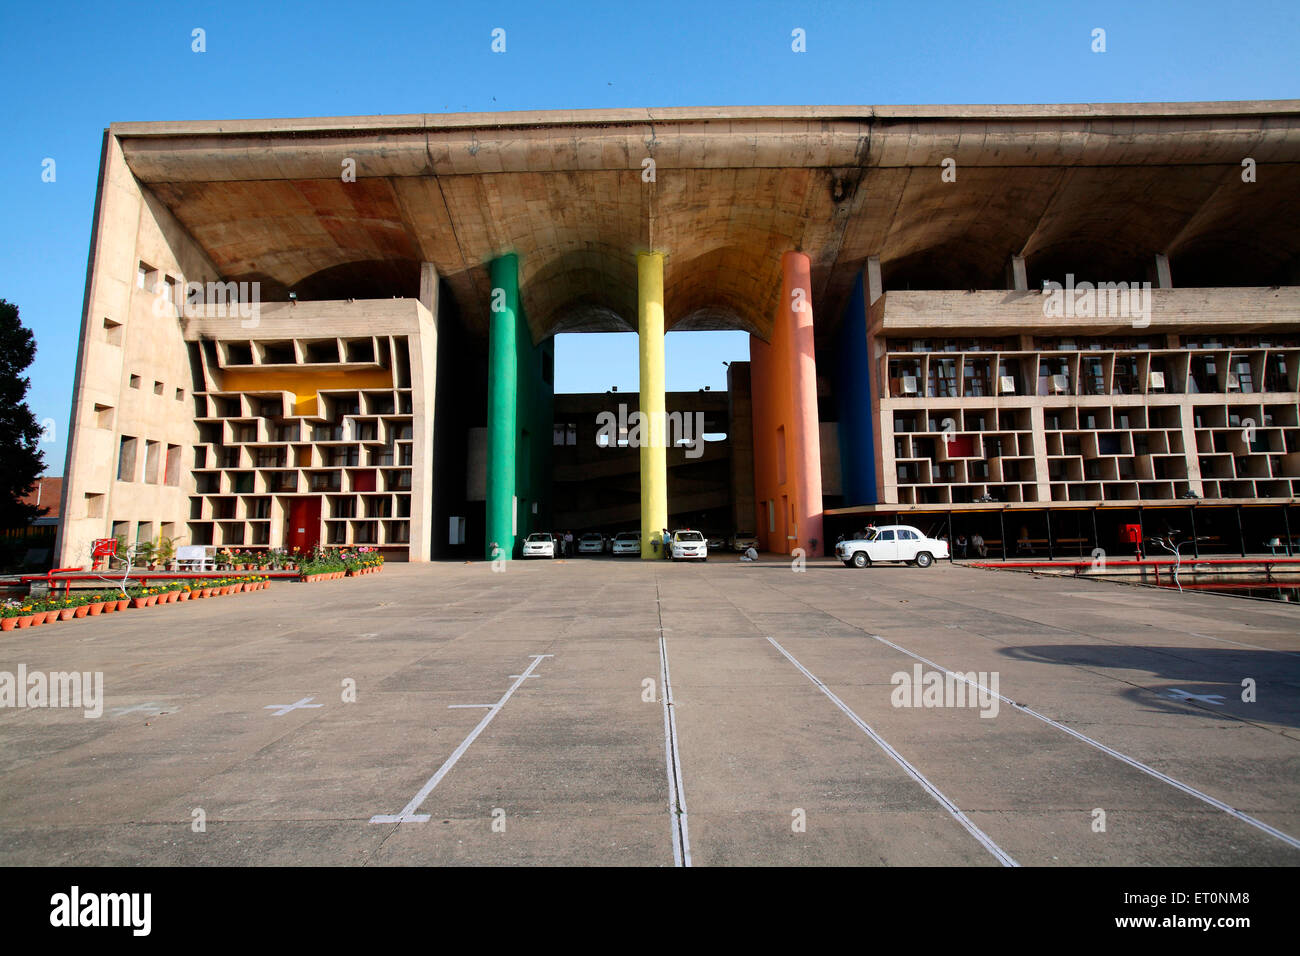 High court building of Chandigarh Union Territory  ; India - Stock Image